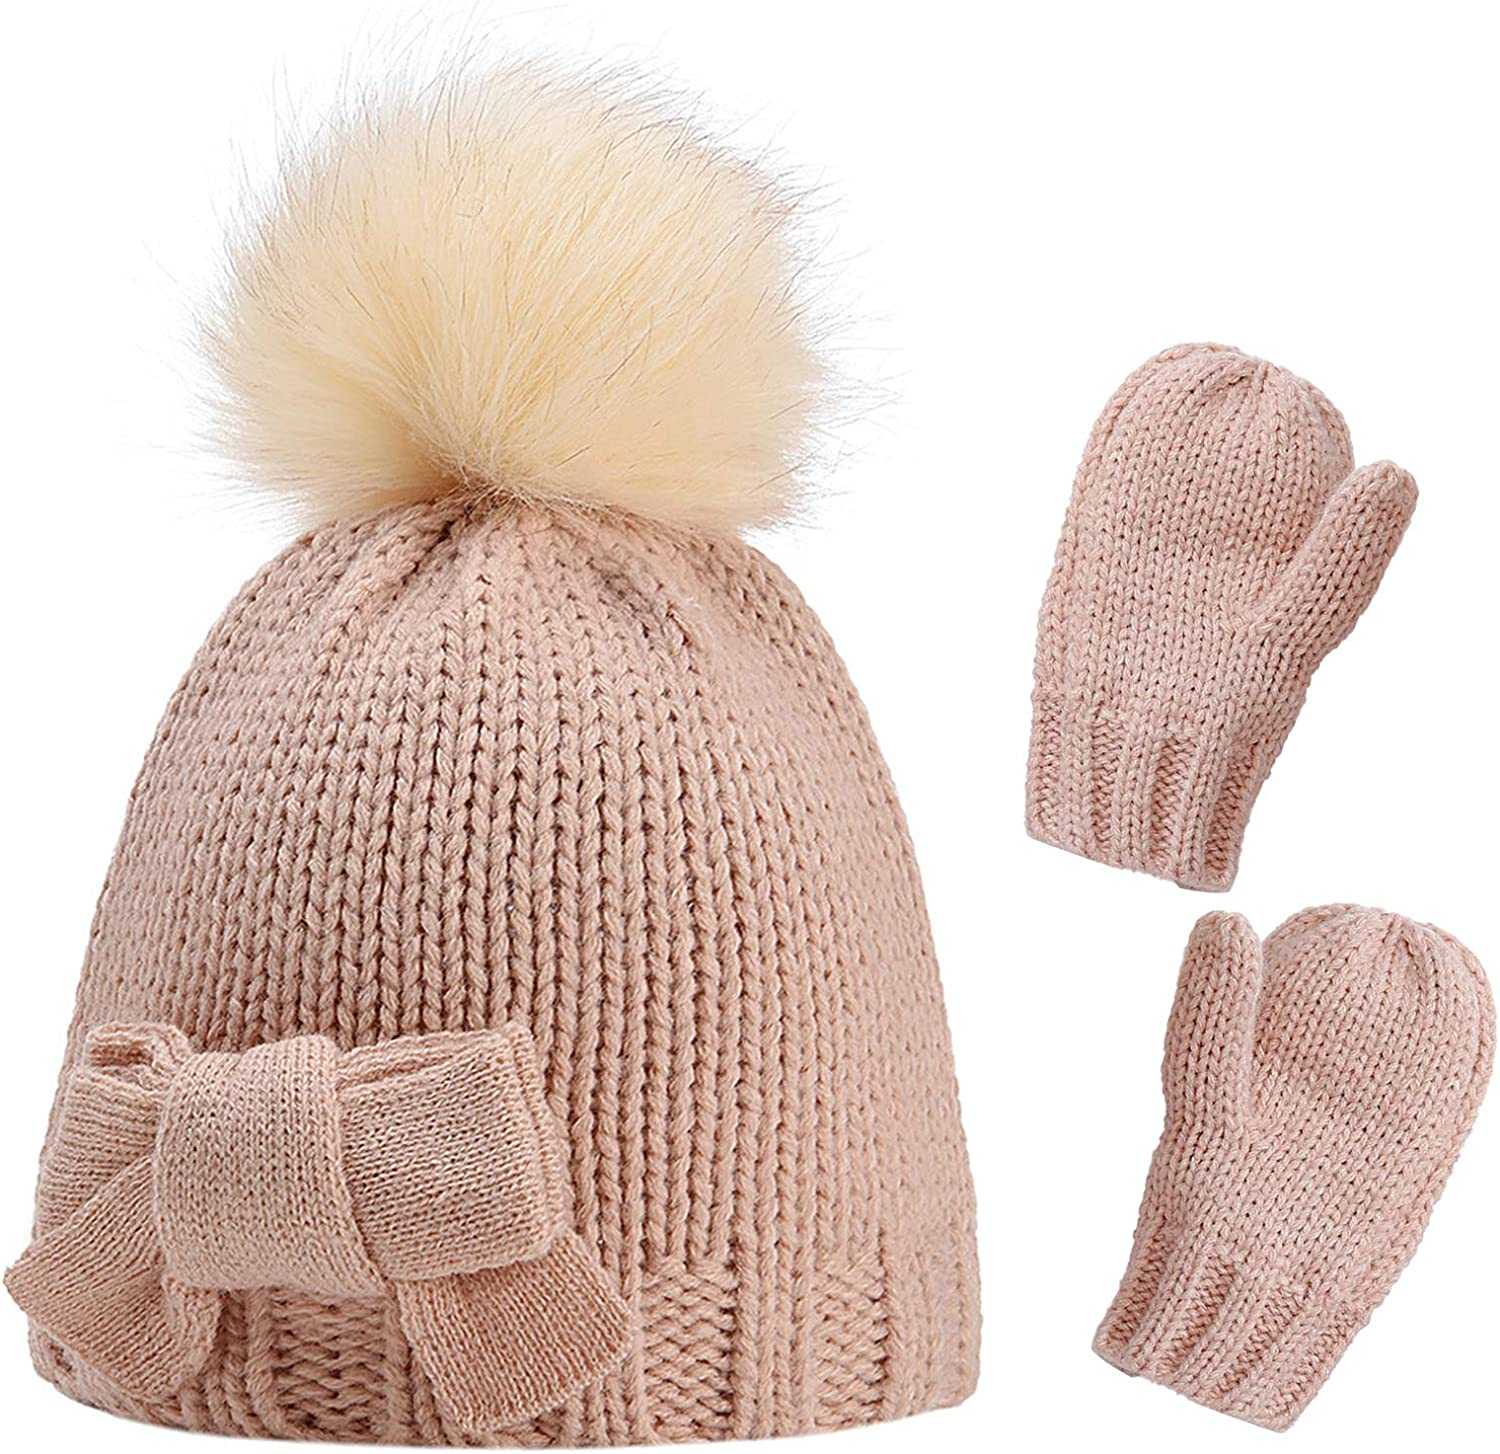 Ueohitsct Baby Toddler Girl Hat Gloves Set Winter Knitted Bowknot Hat+ Mittens